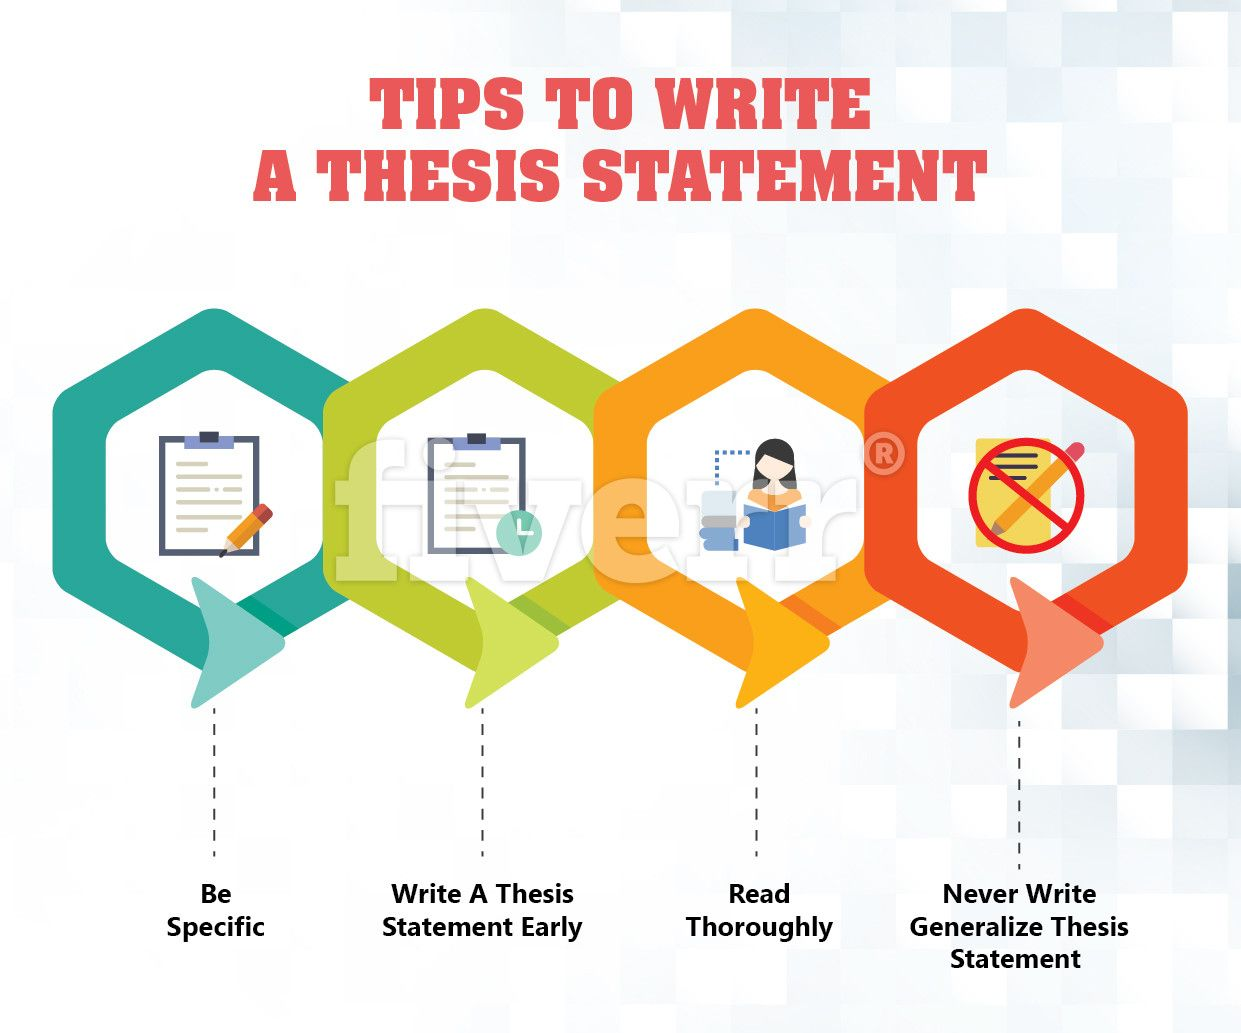 Practical Way To Writing Strong Thesis Statements With Example | Thesis  Statement, Writing A Thesis Statement, Guided Writing